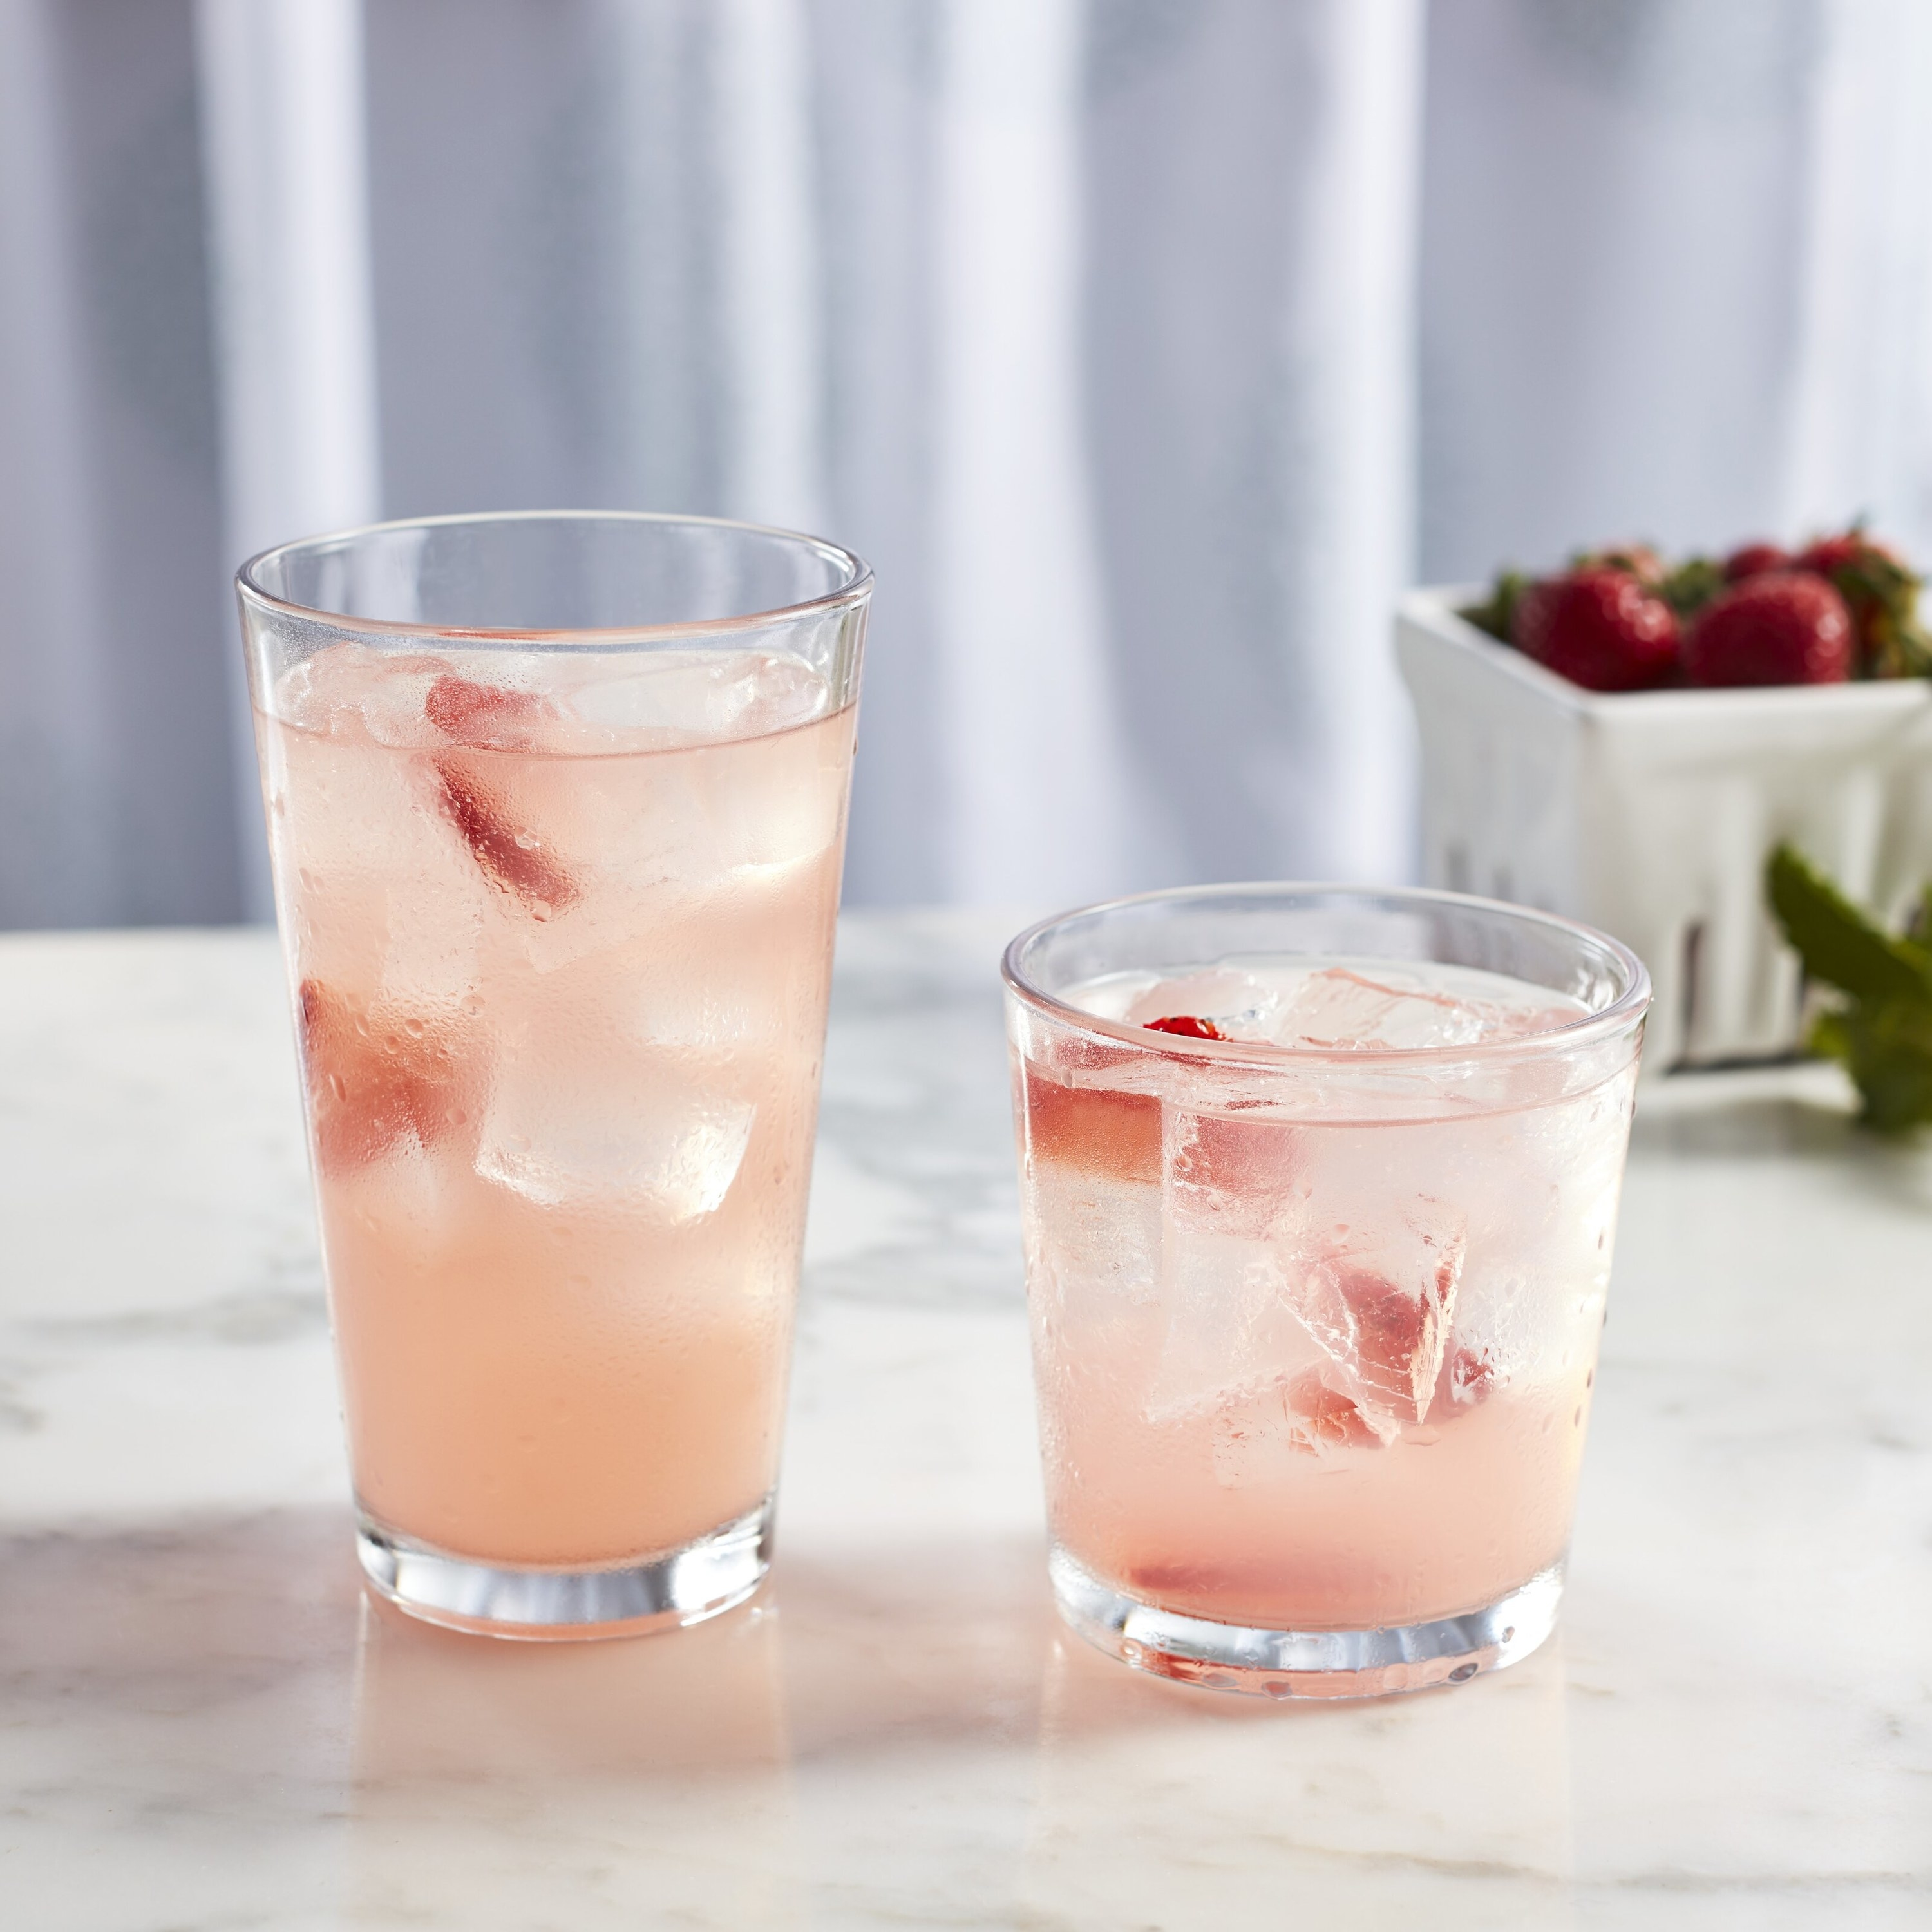 Tall and short glasses with strawberry lemonade inside